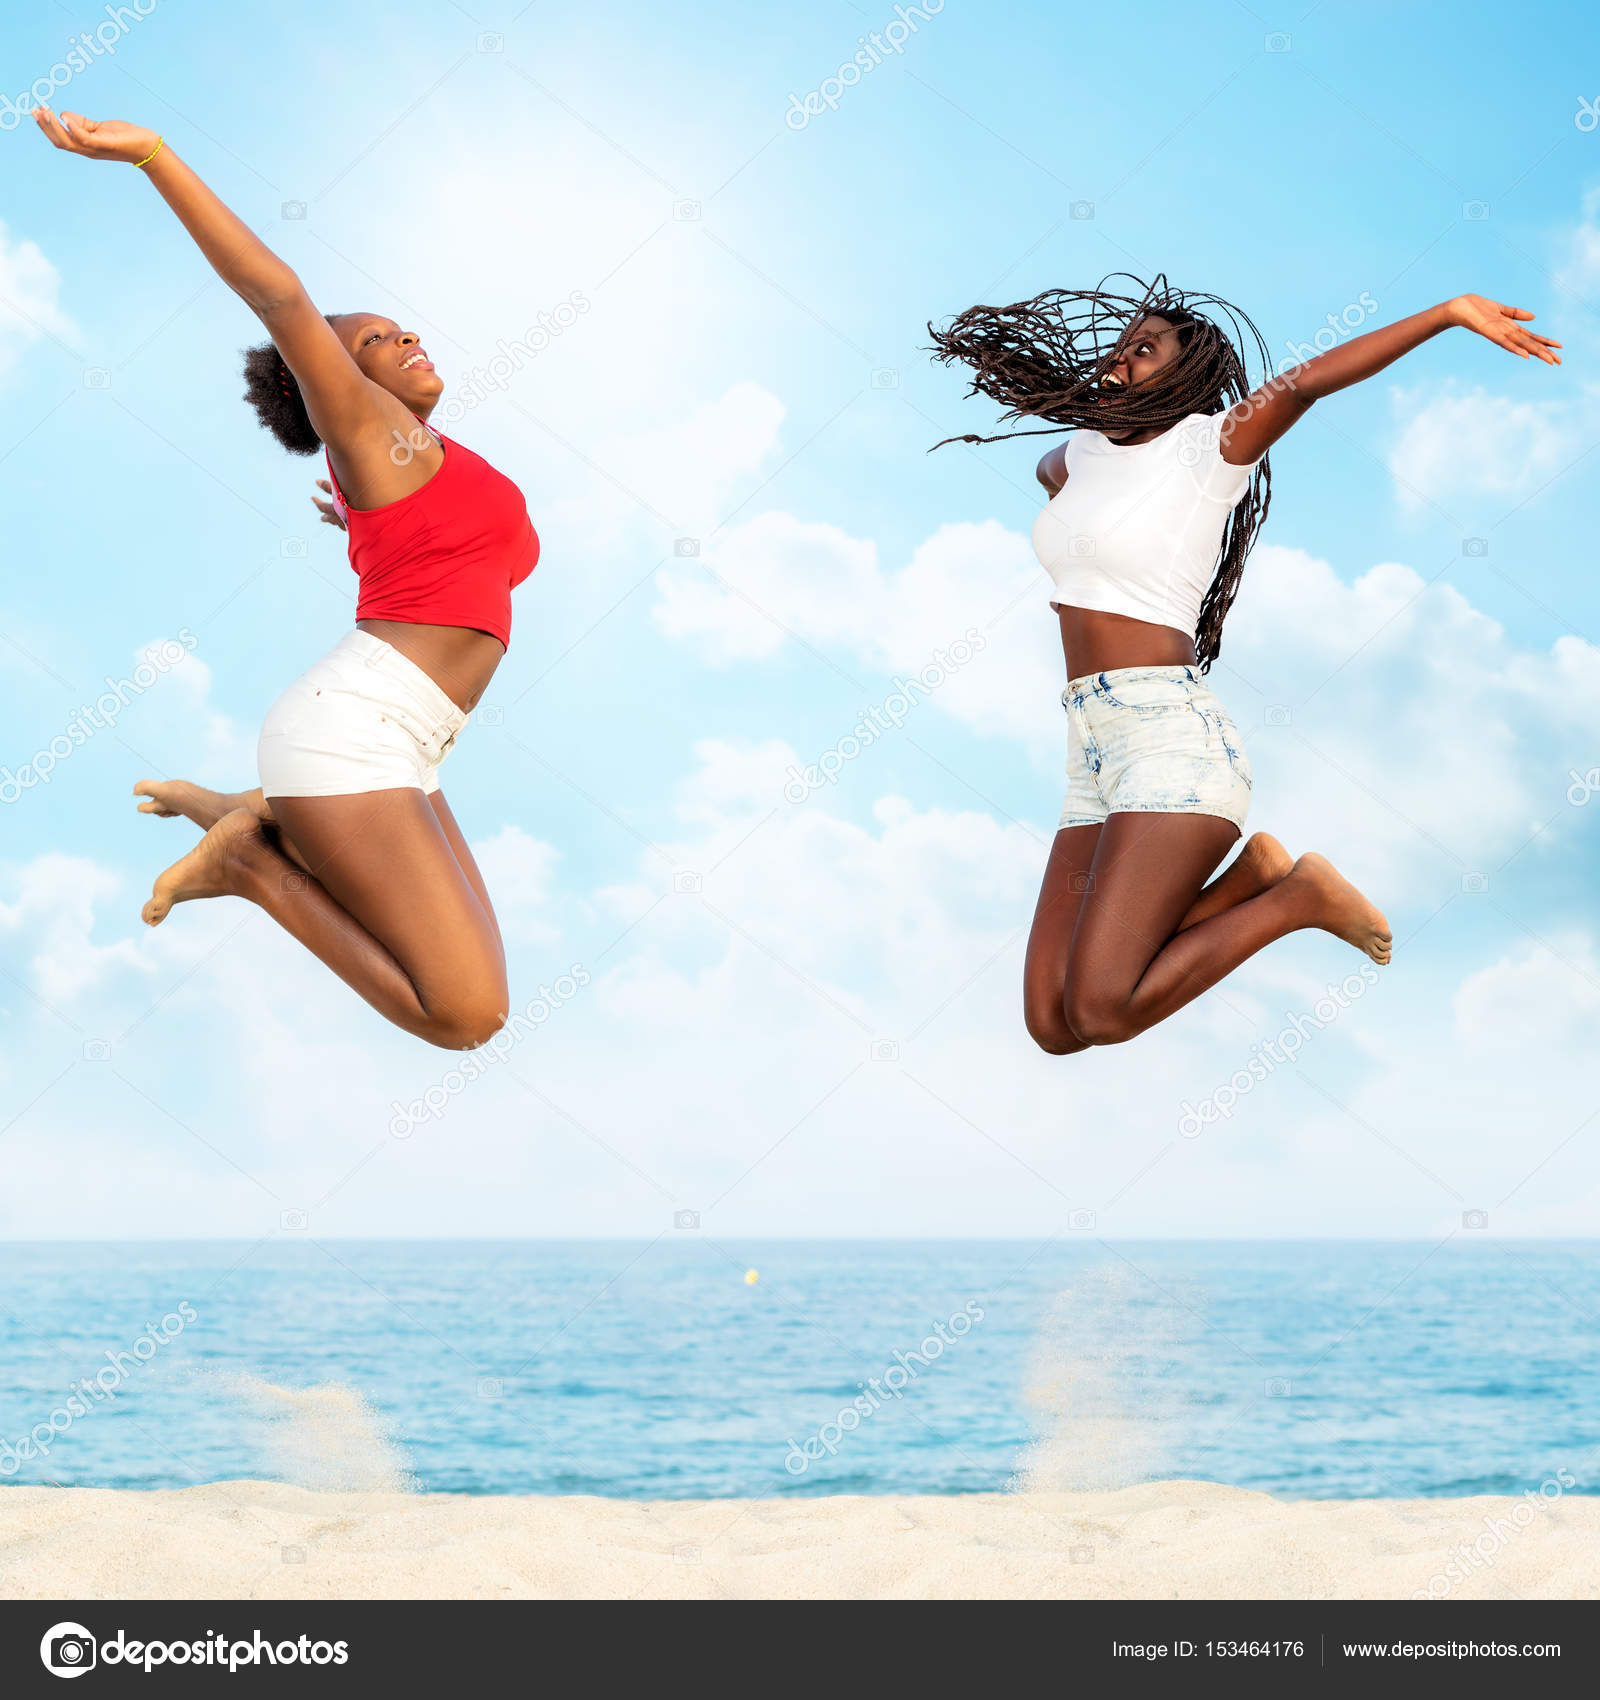 Image result for african girls jumping at the beach